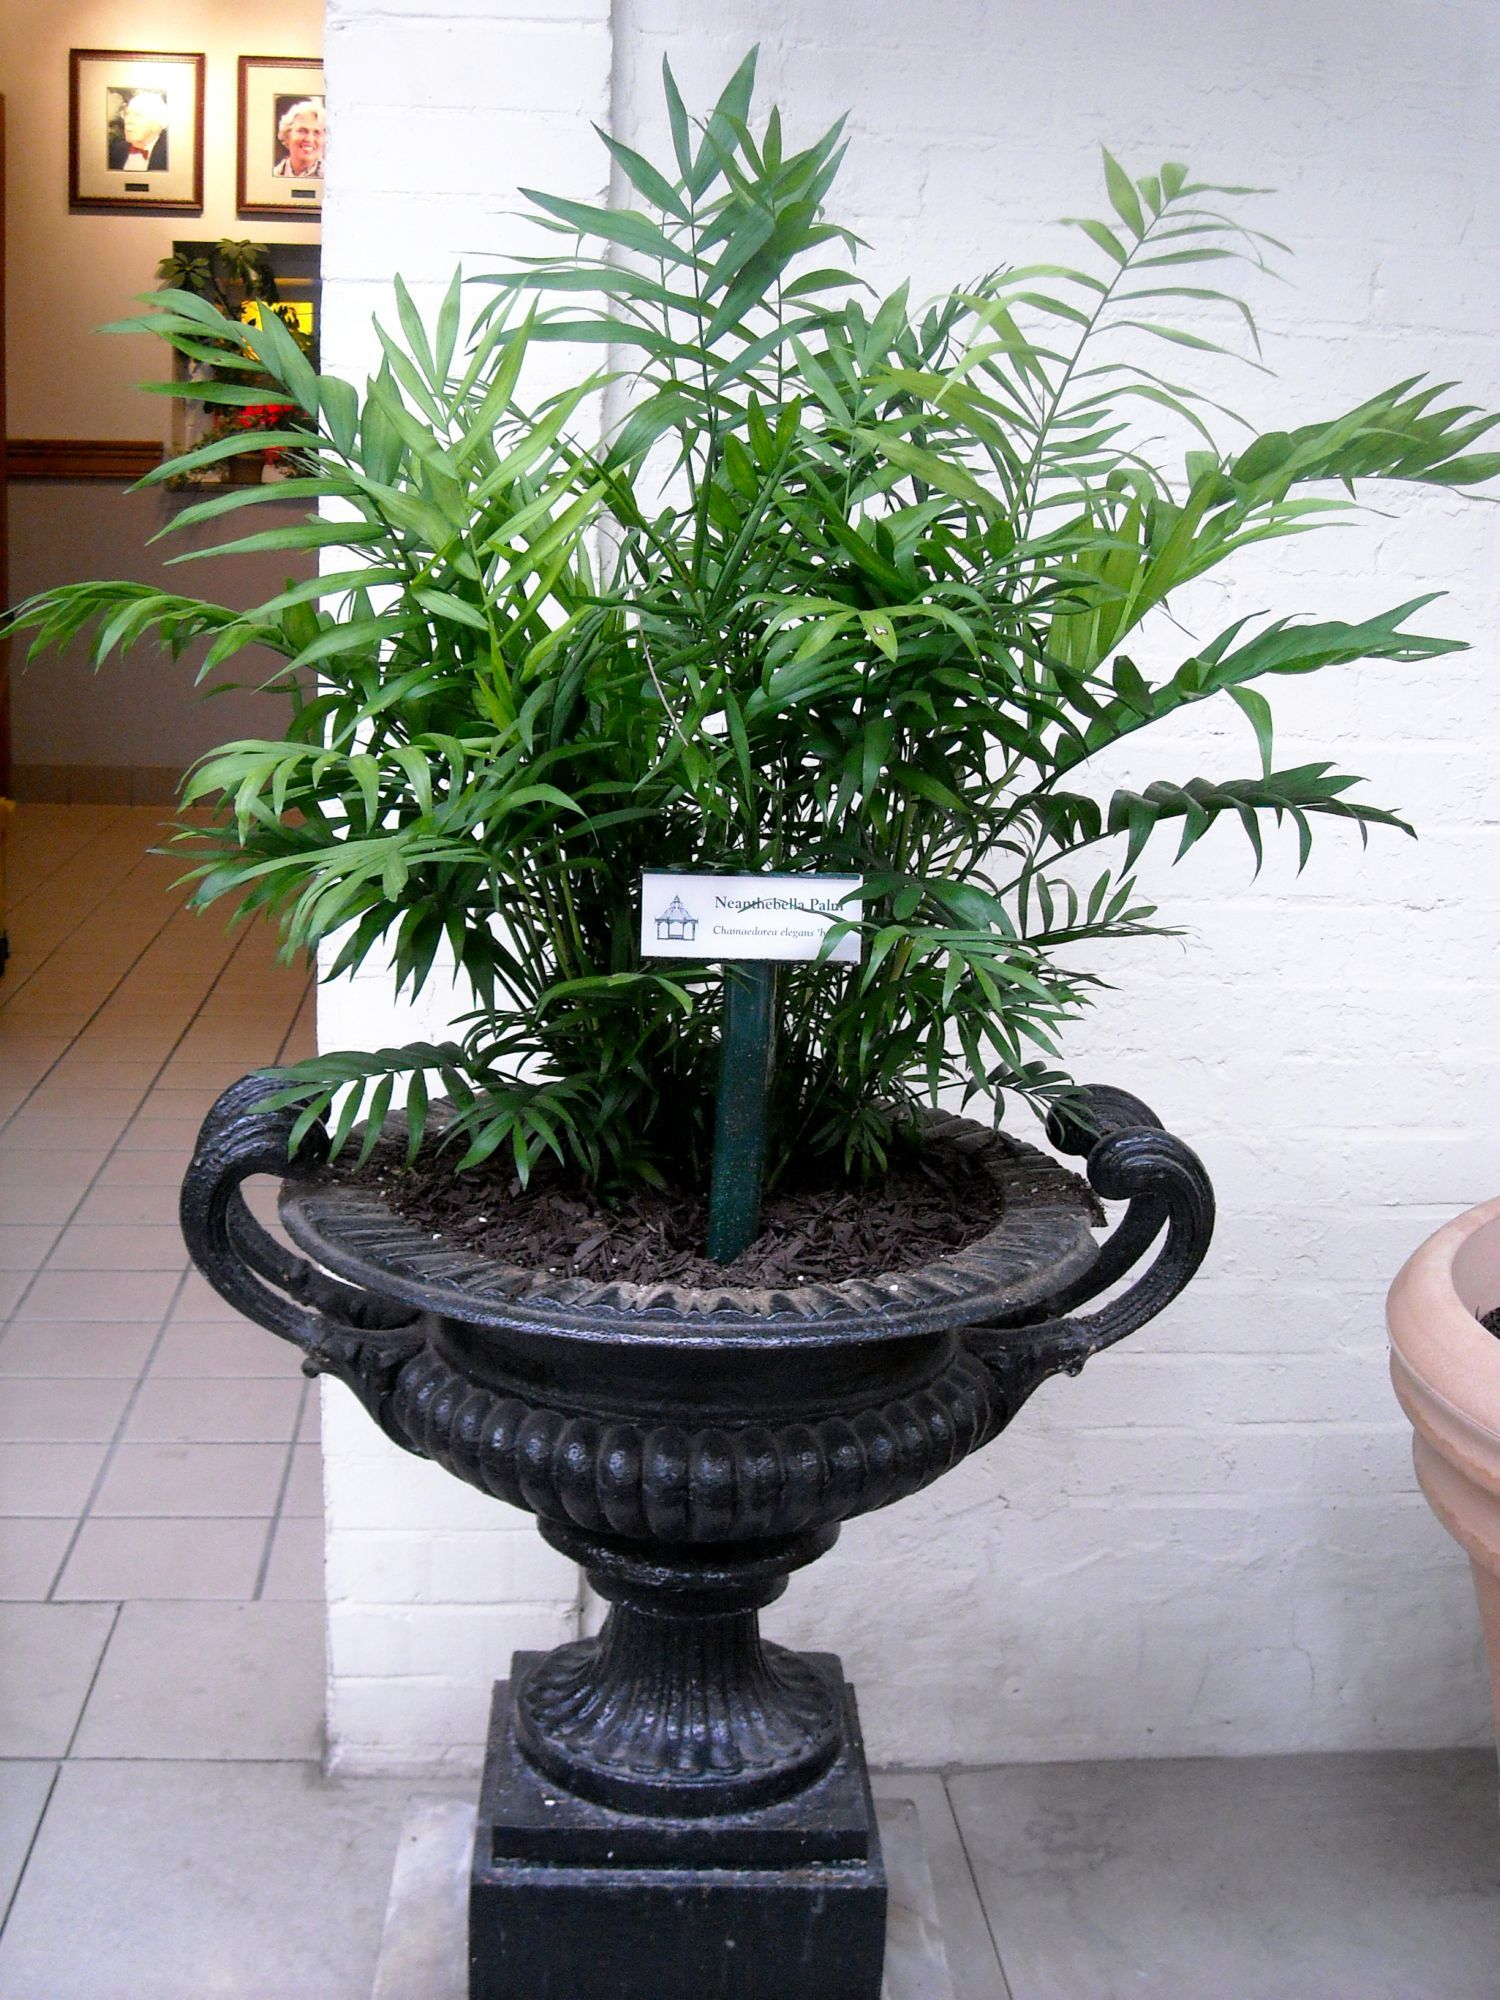 Facts about low light house plants plants in nanopics - Tall house plants ...